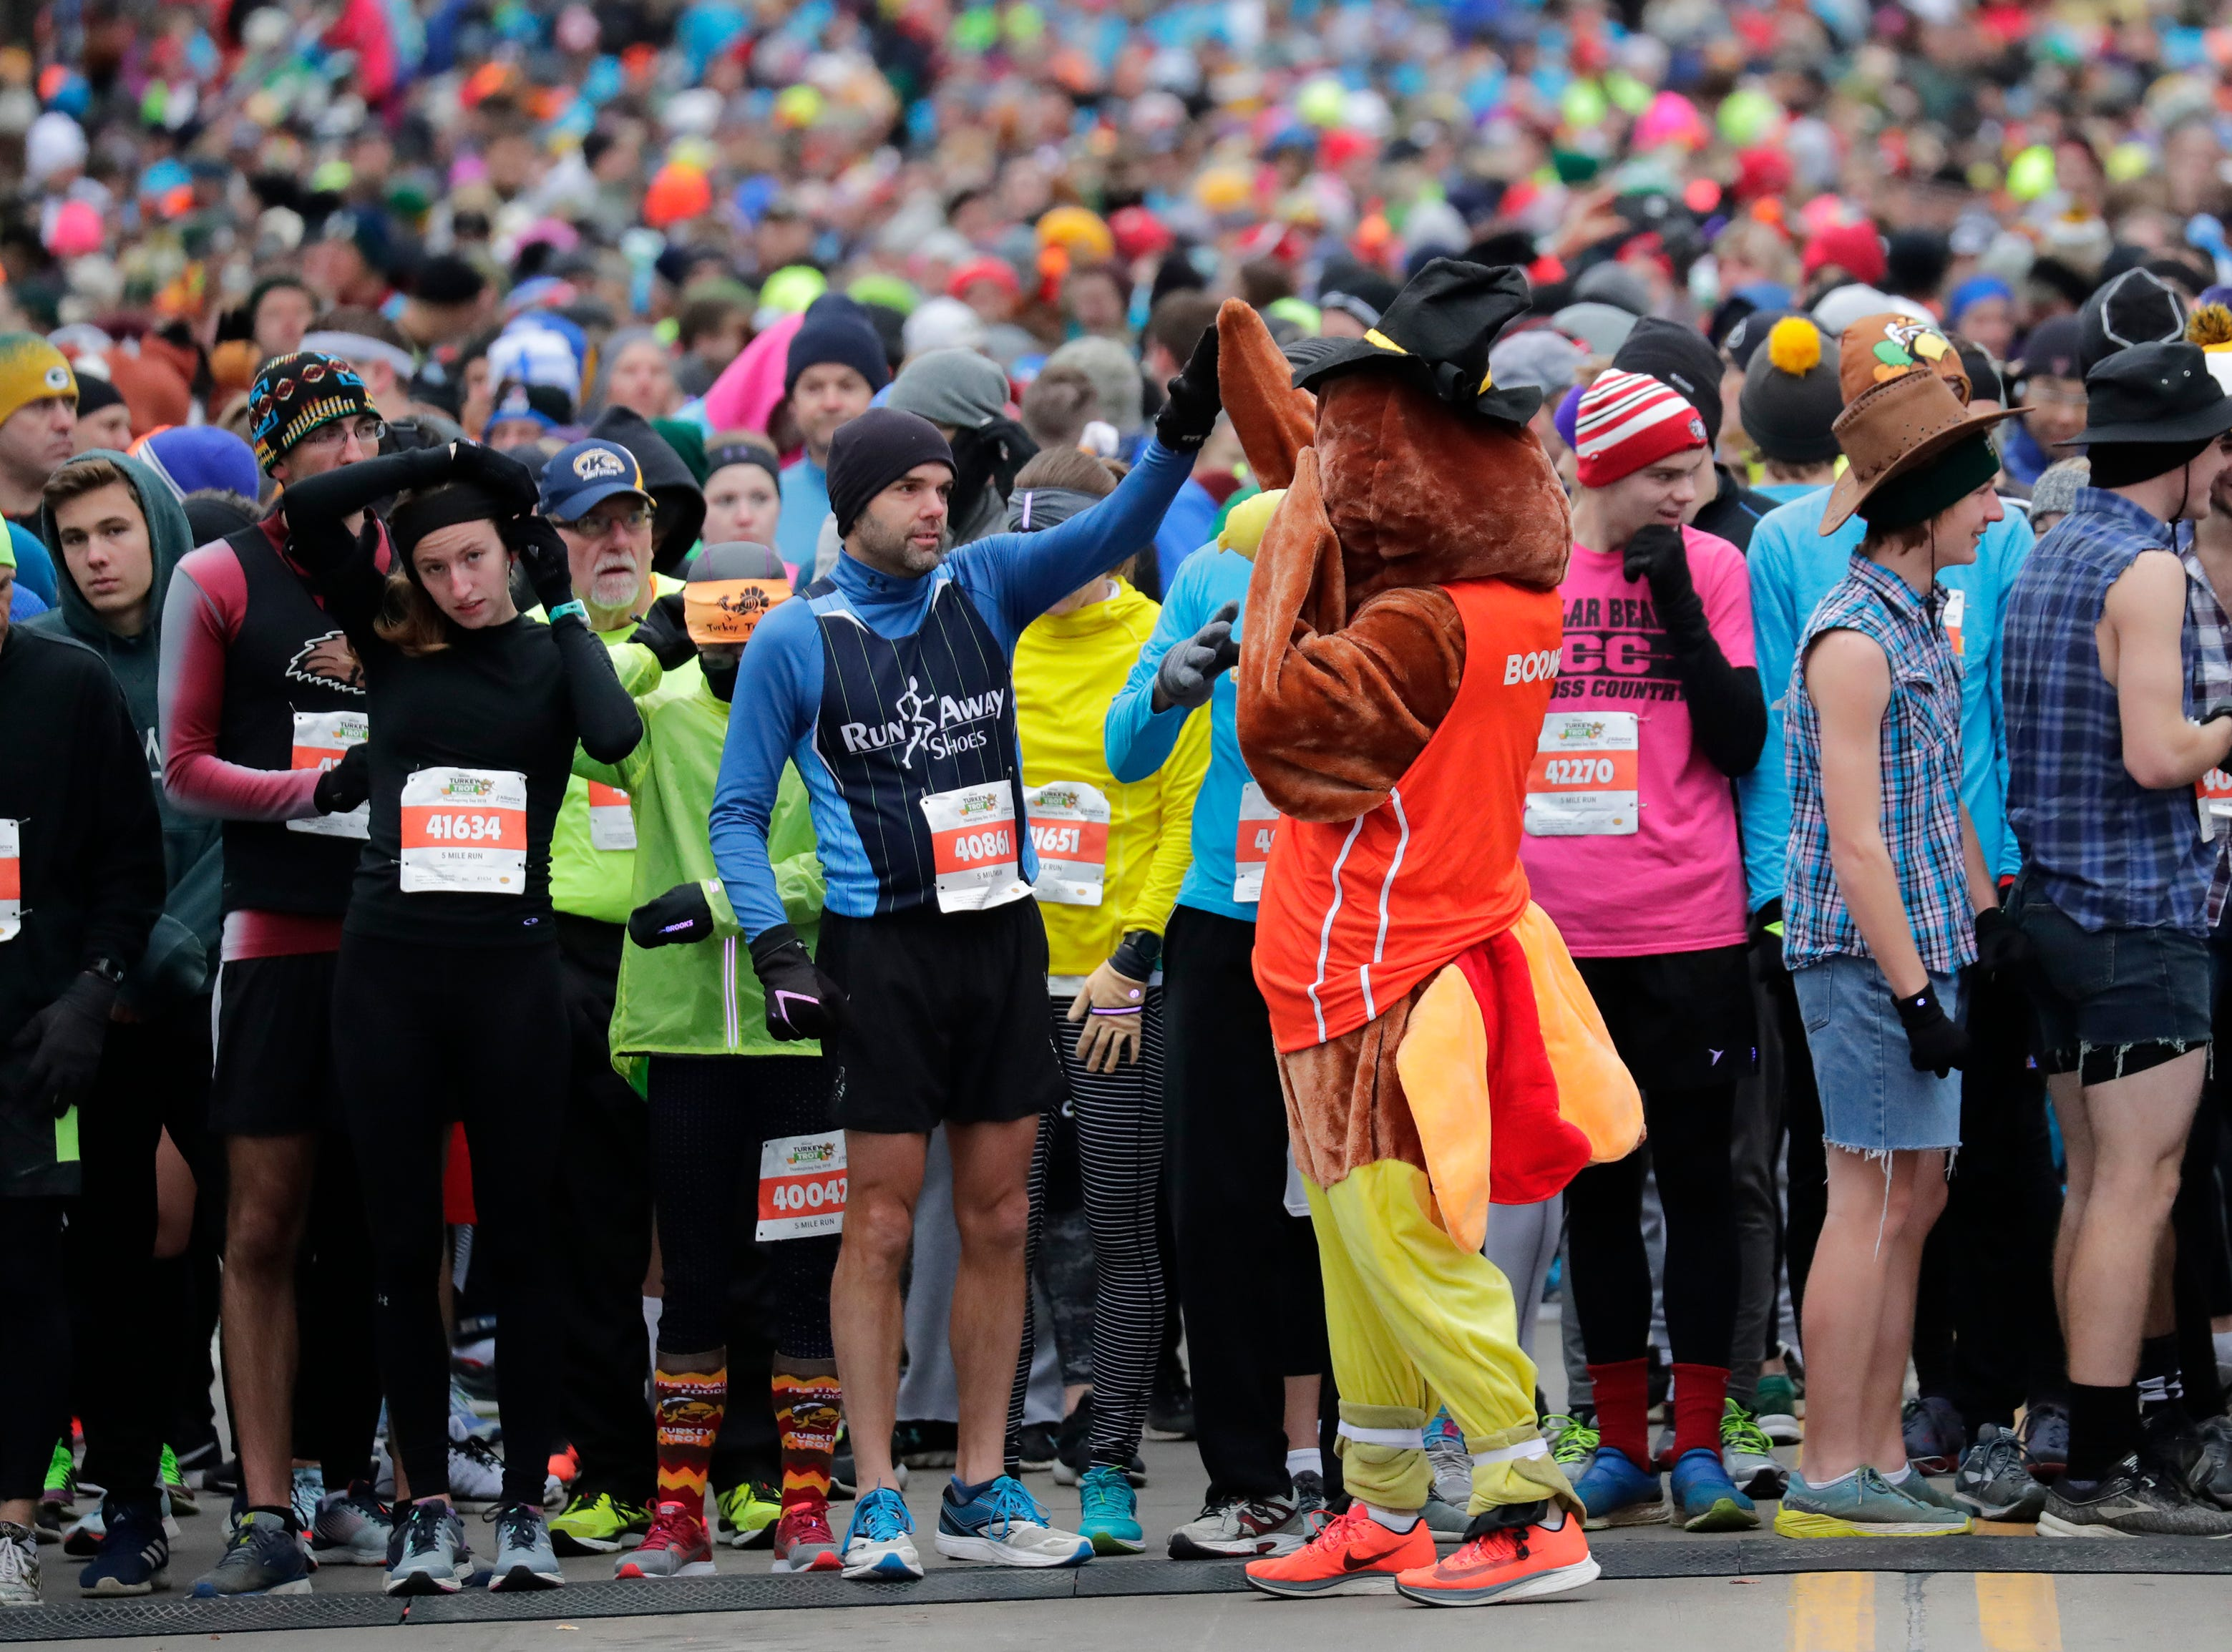 Partipants get ready to take off for 11th Annual Festival Foods Turkey Trot Thursday, November 22, 2018, in Appleton, Wis. 